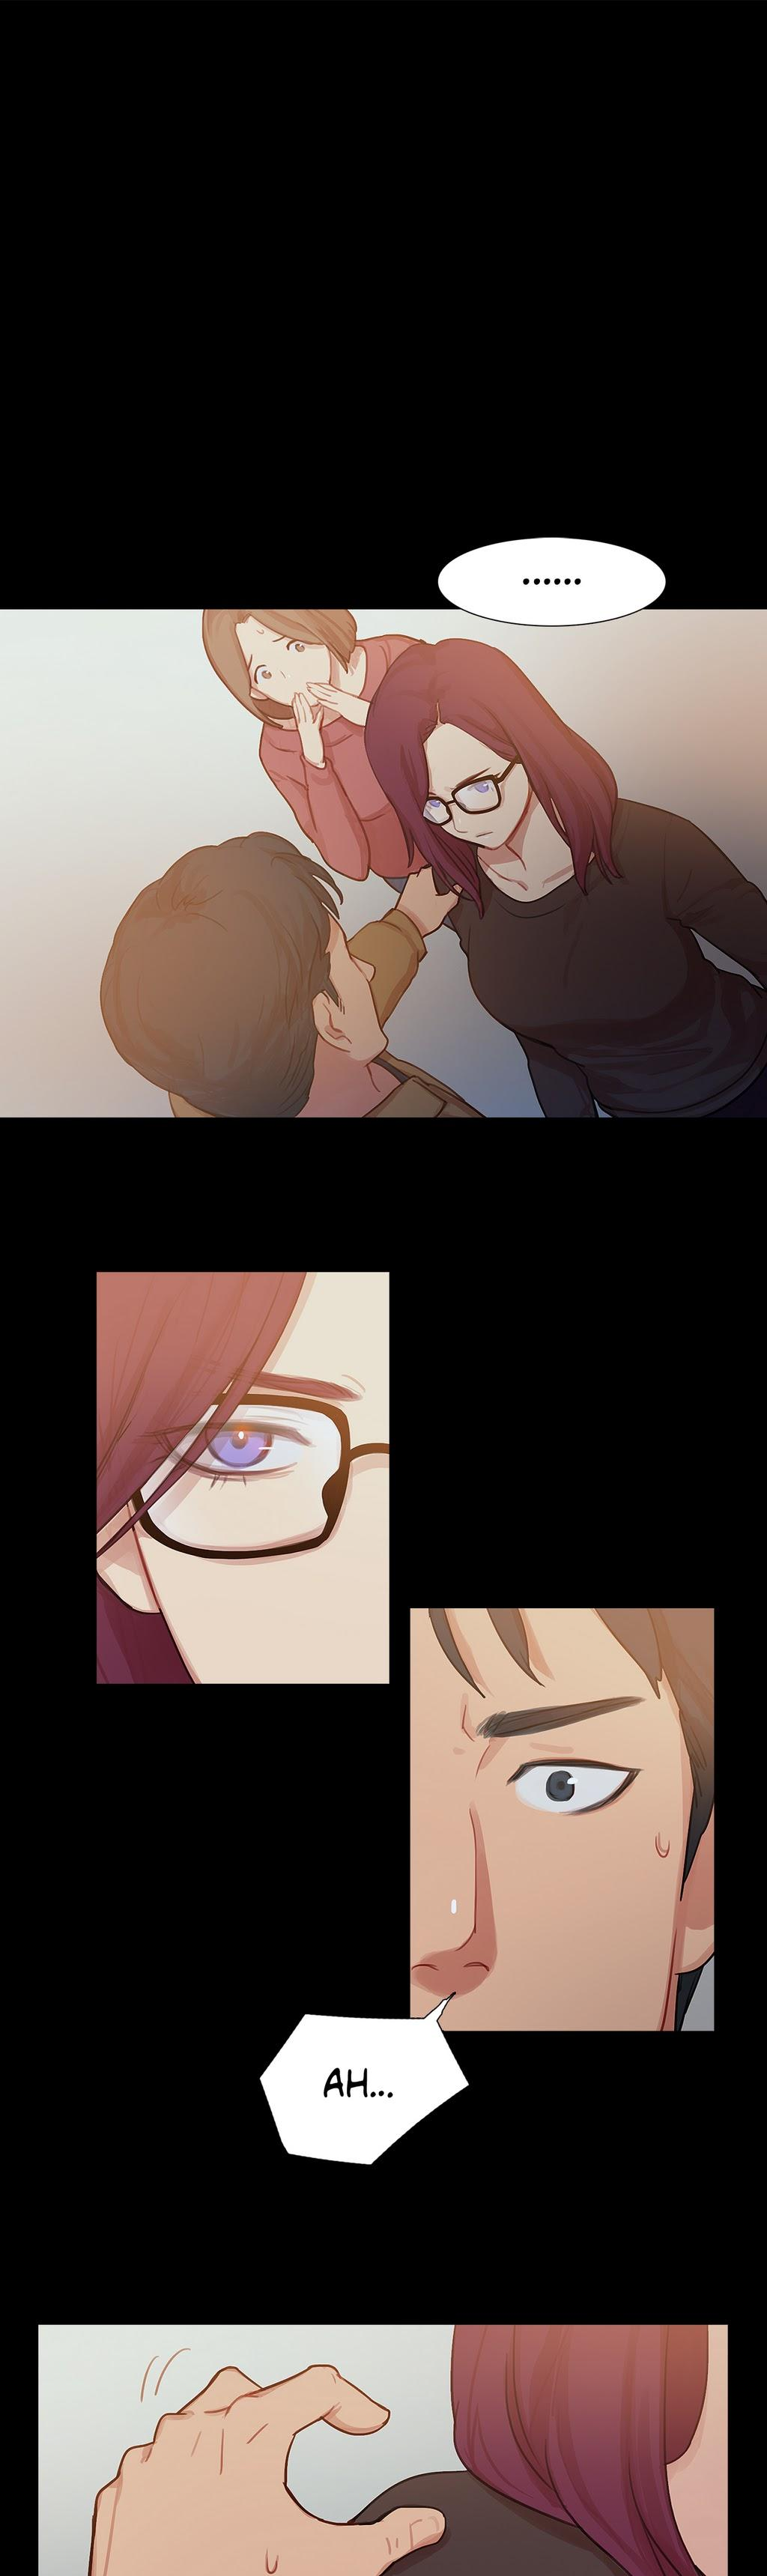 Scandal of the Witch Ch.1-6 76